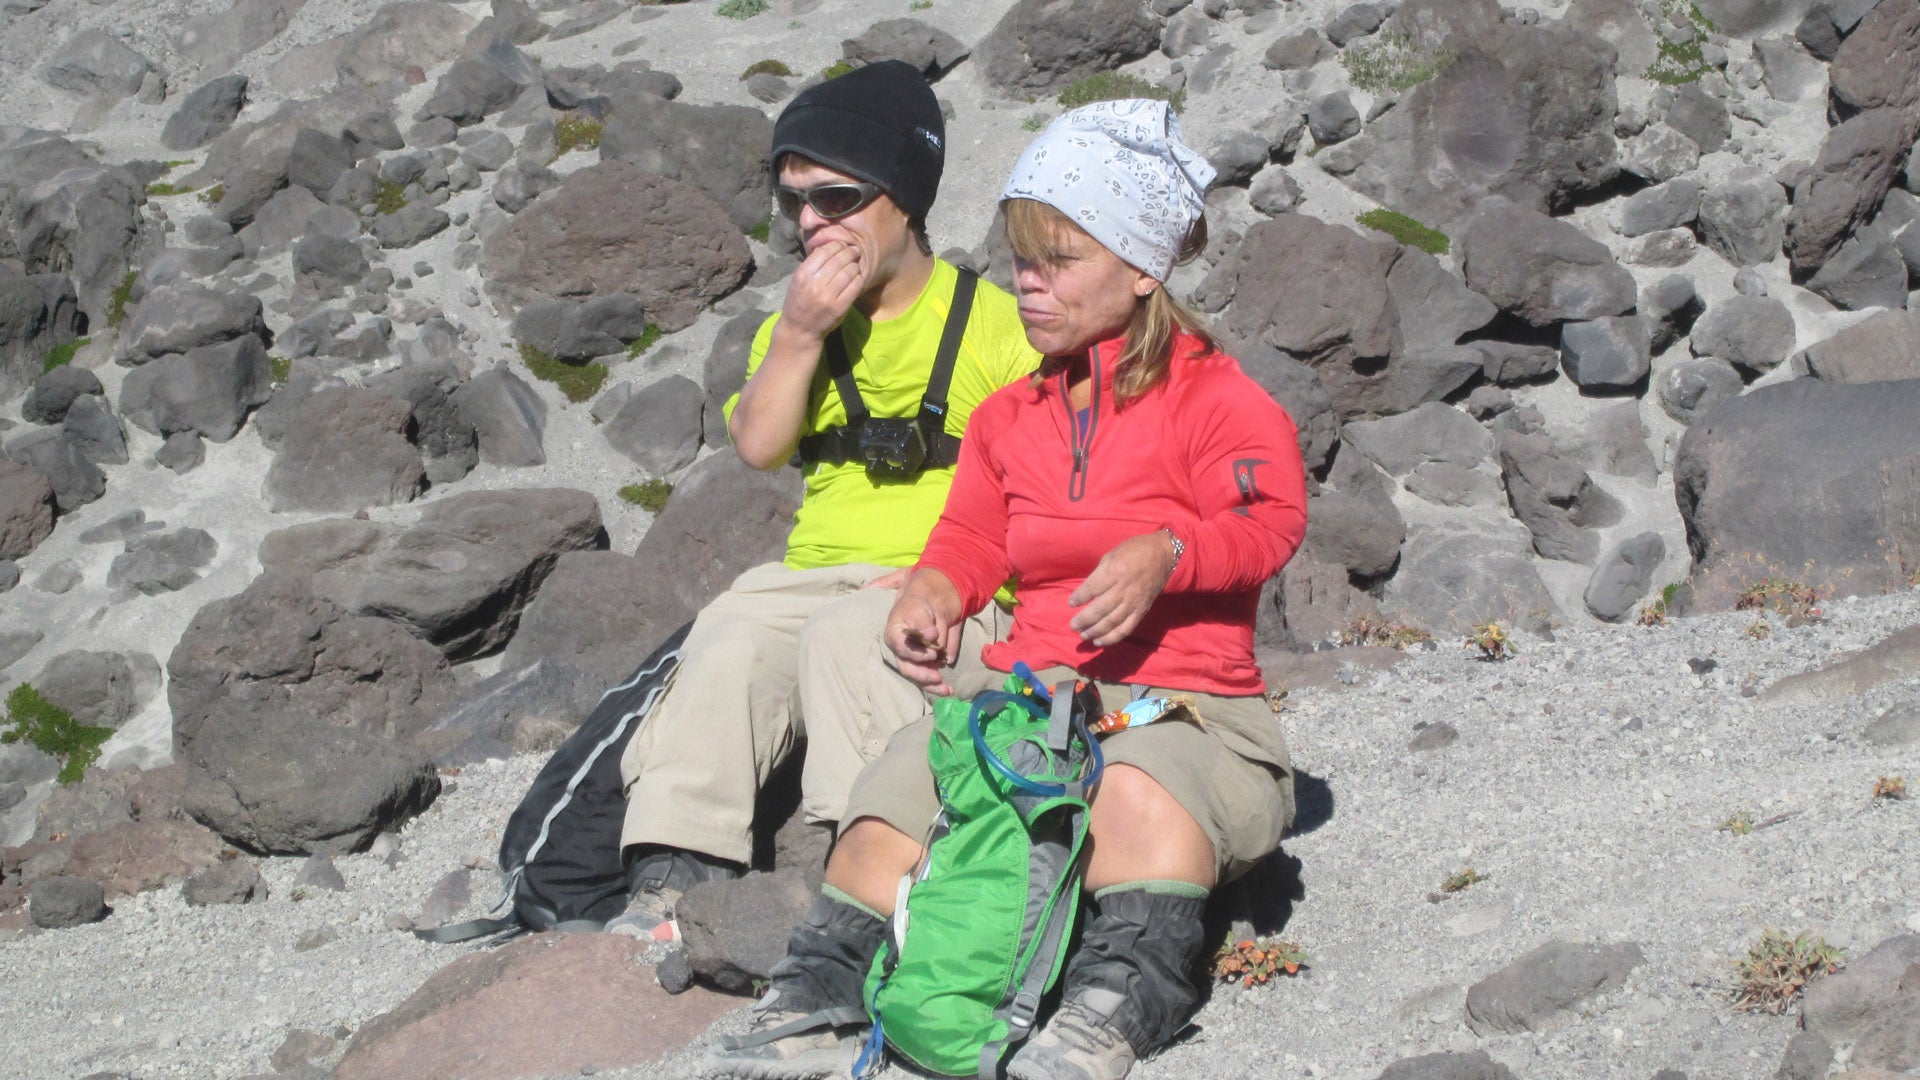 Little People, Big World: Conquering Mount St. Helens